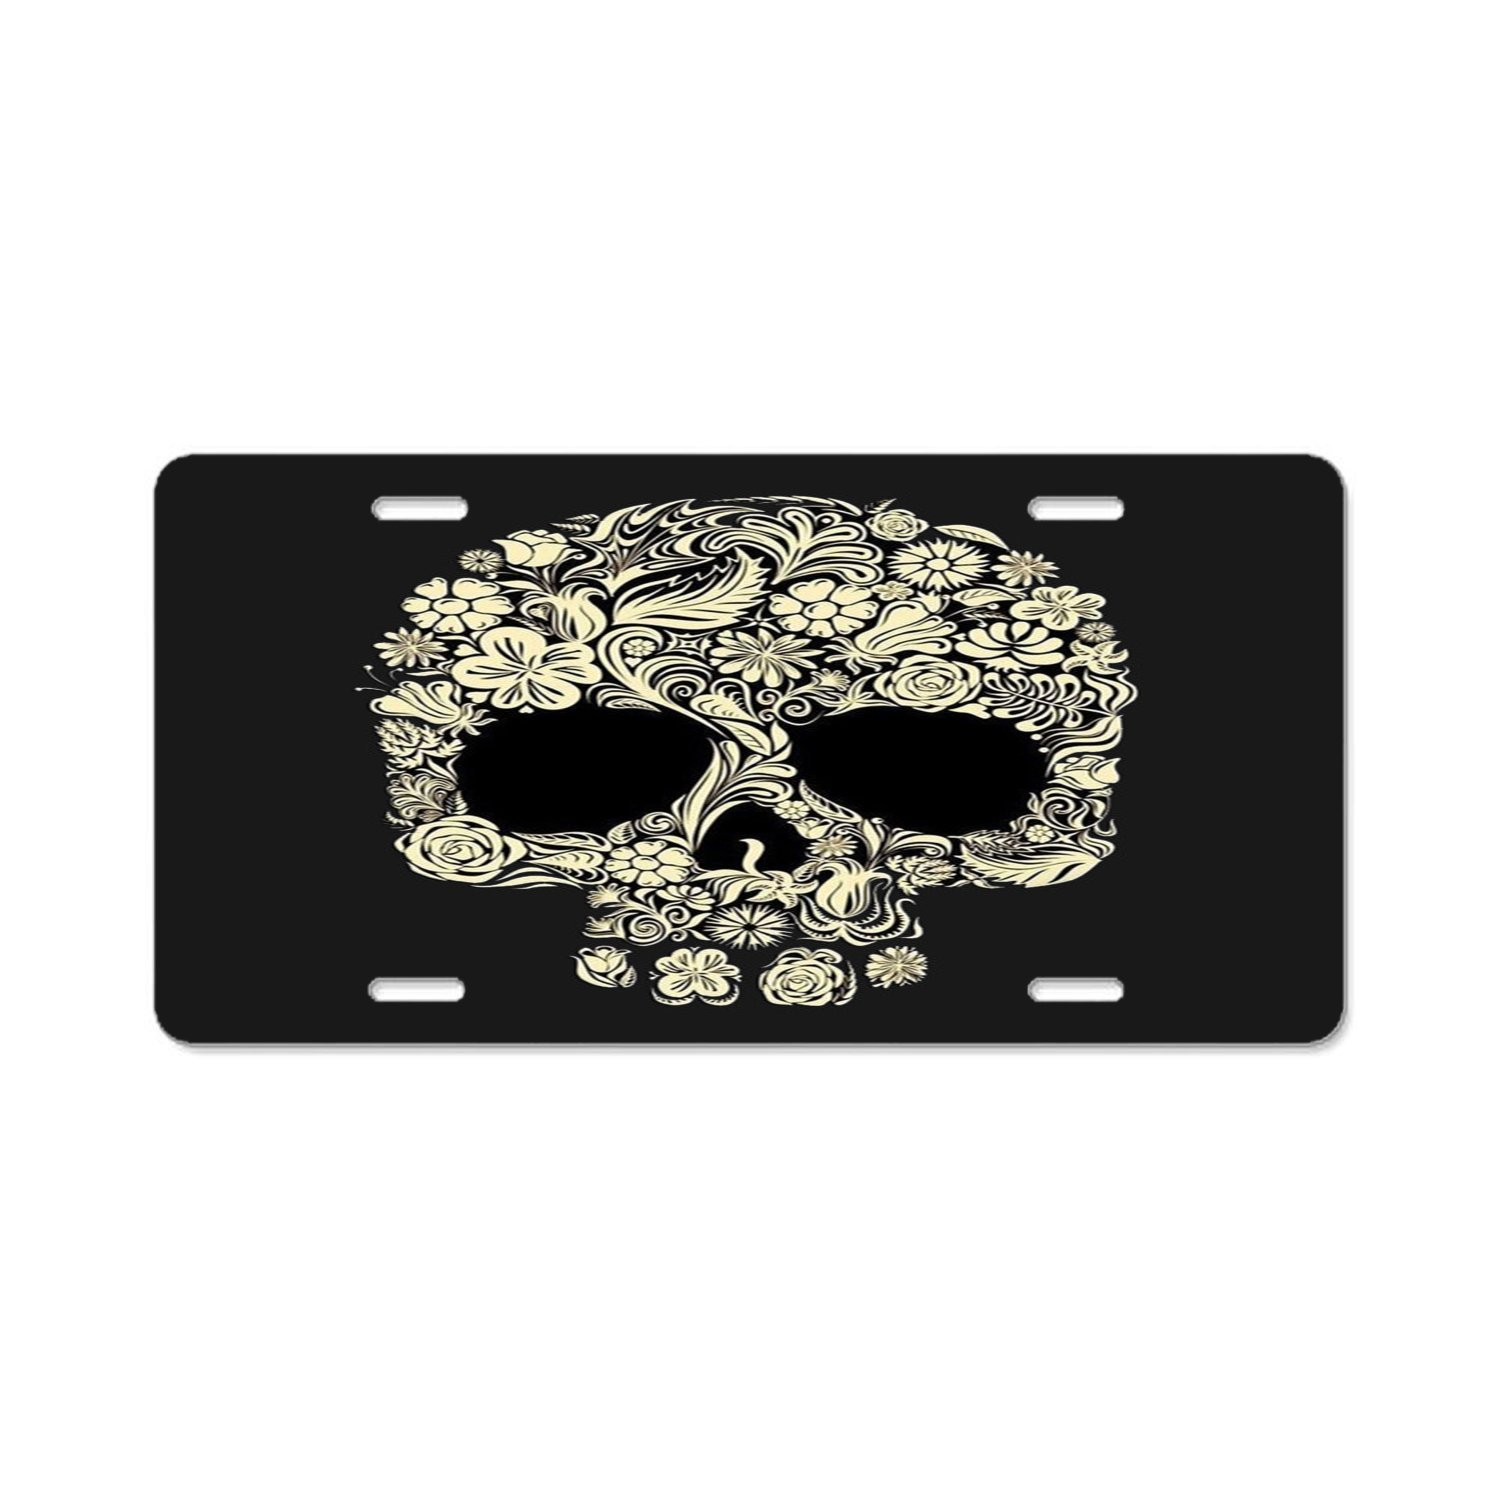 Ayibagexi Florida License Plate Frame - Plate Holder for American Universal Car Tag